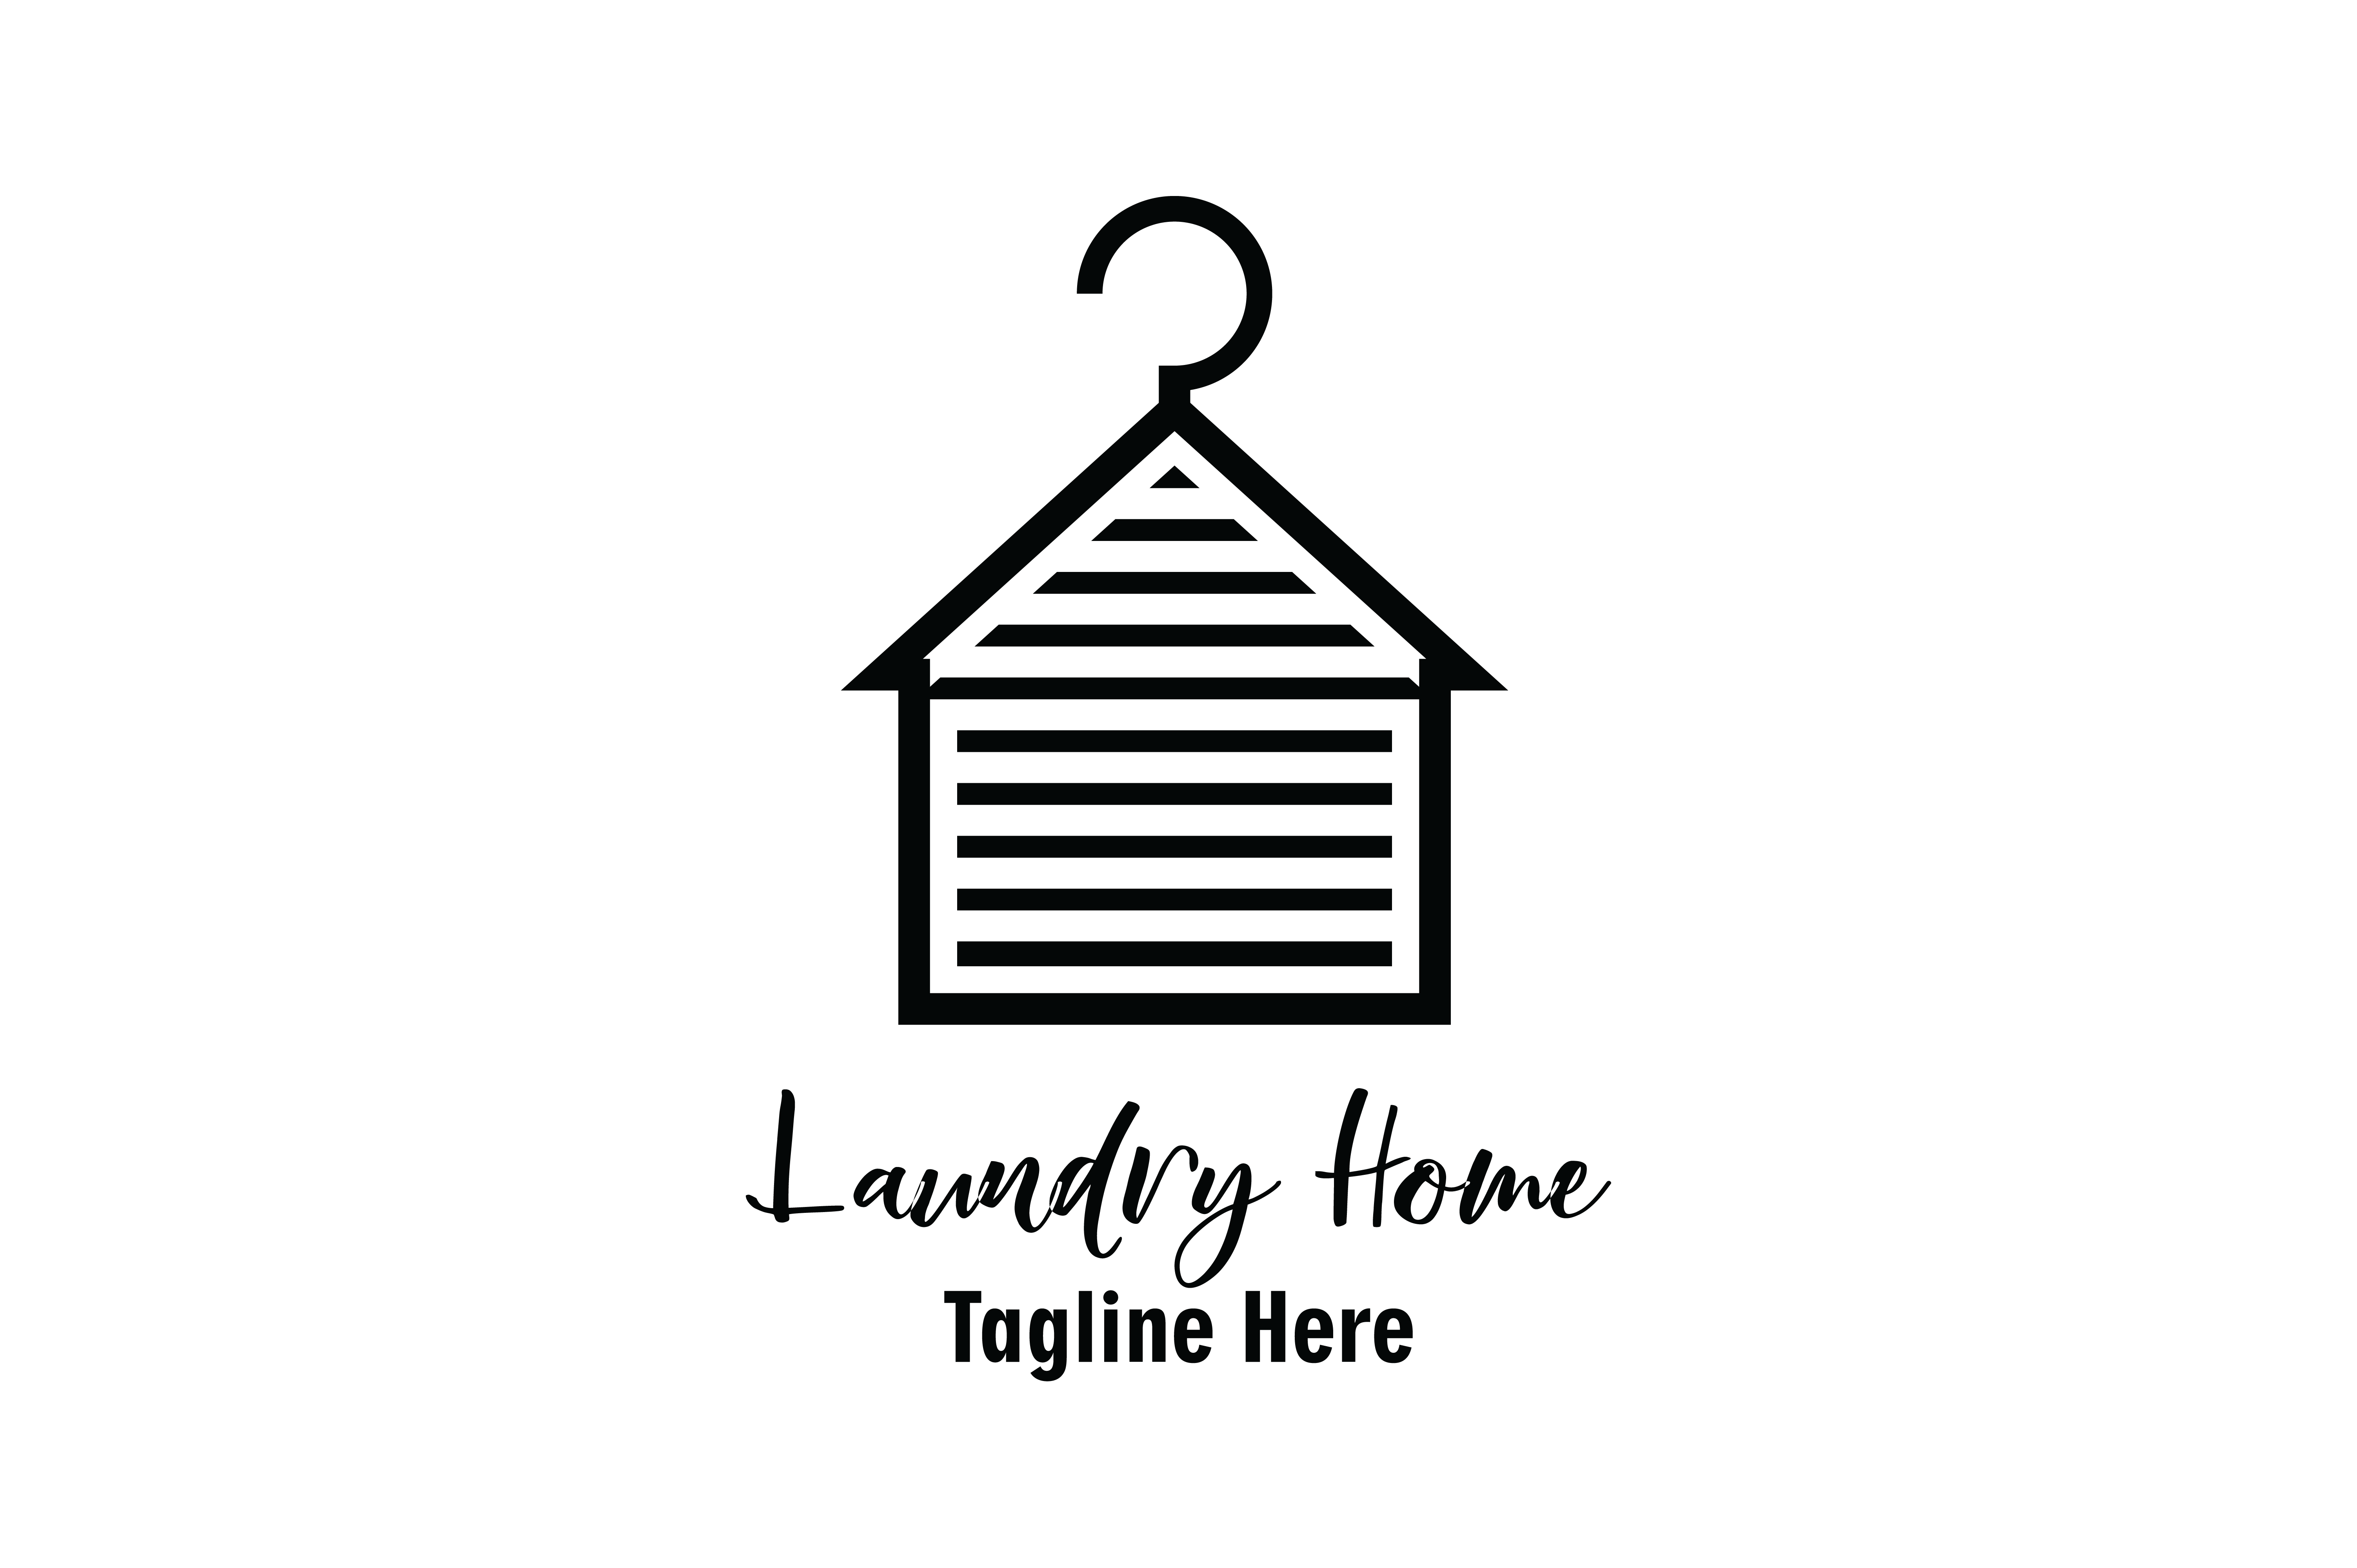 Download Free Laundry Home Logo Vector Graphic By Yuhana Purwanti Creative for Cricut Explore, Silhouette and other cutting machines.